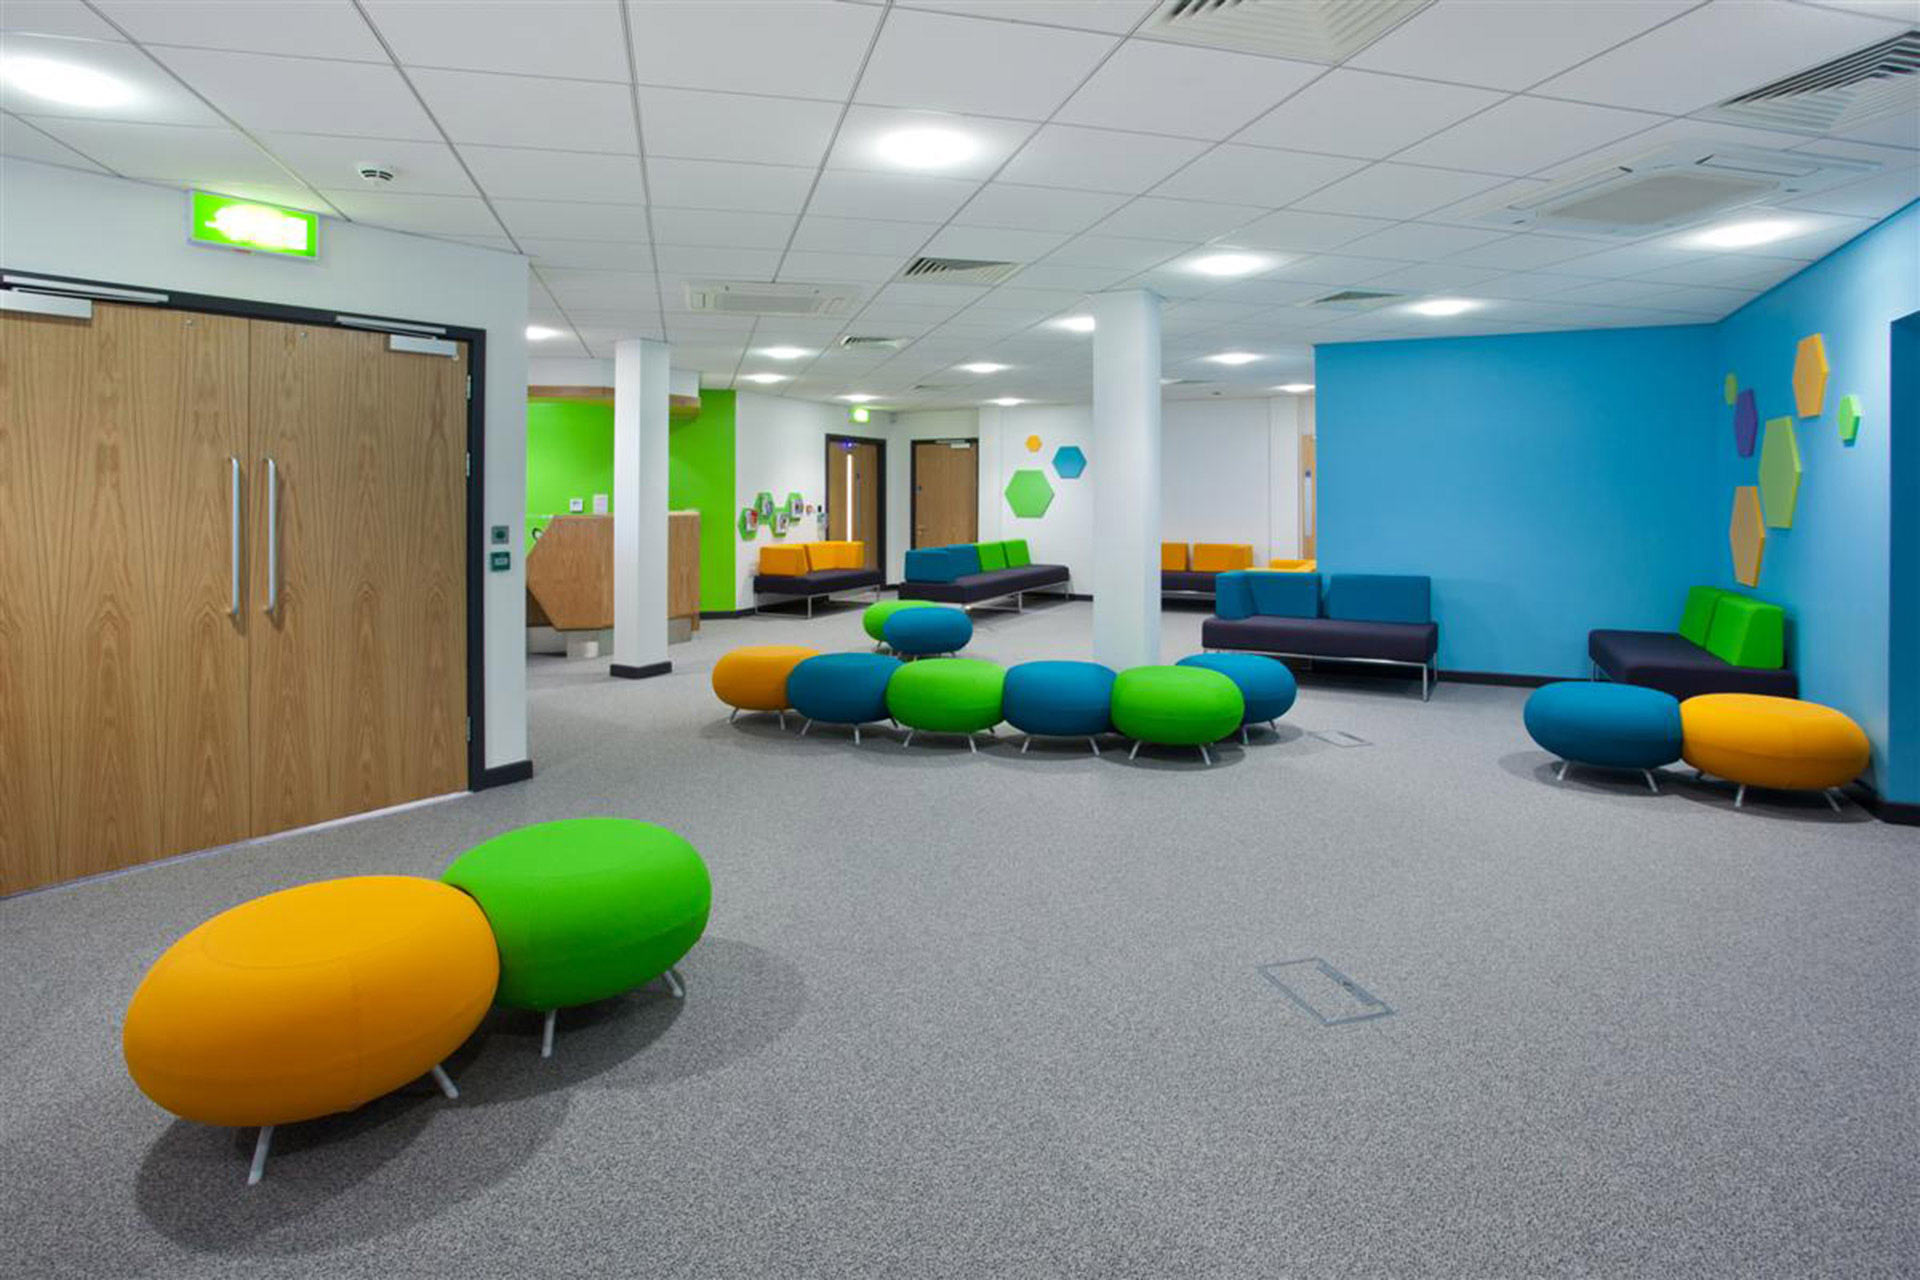 informal seating clusters within NHS waiting area